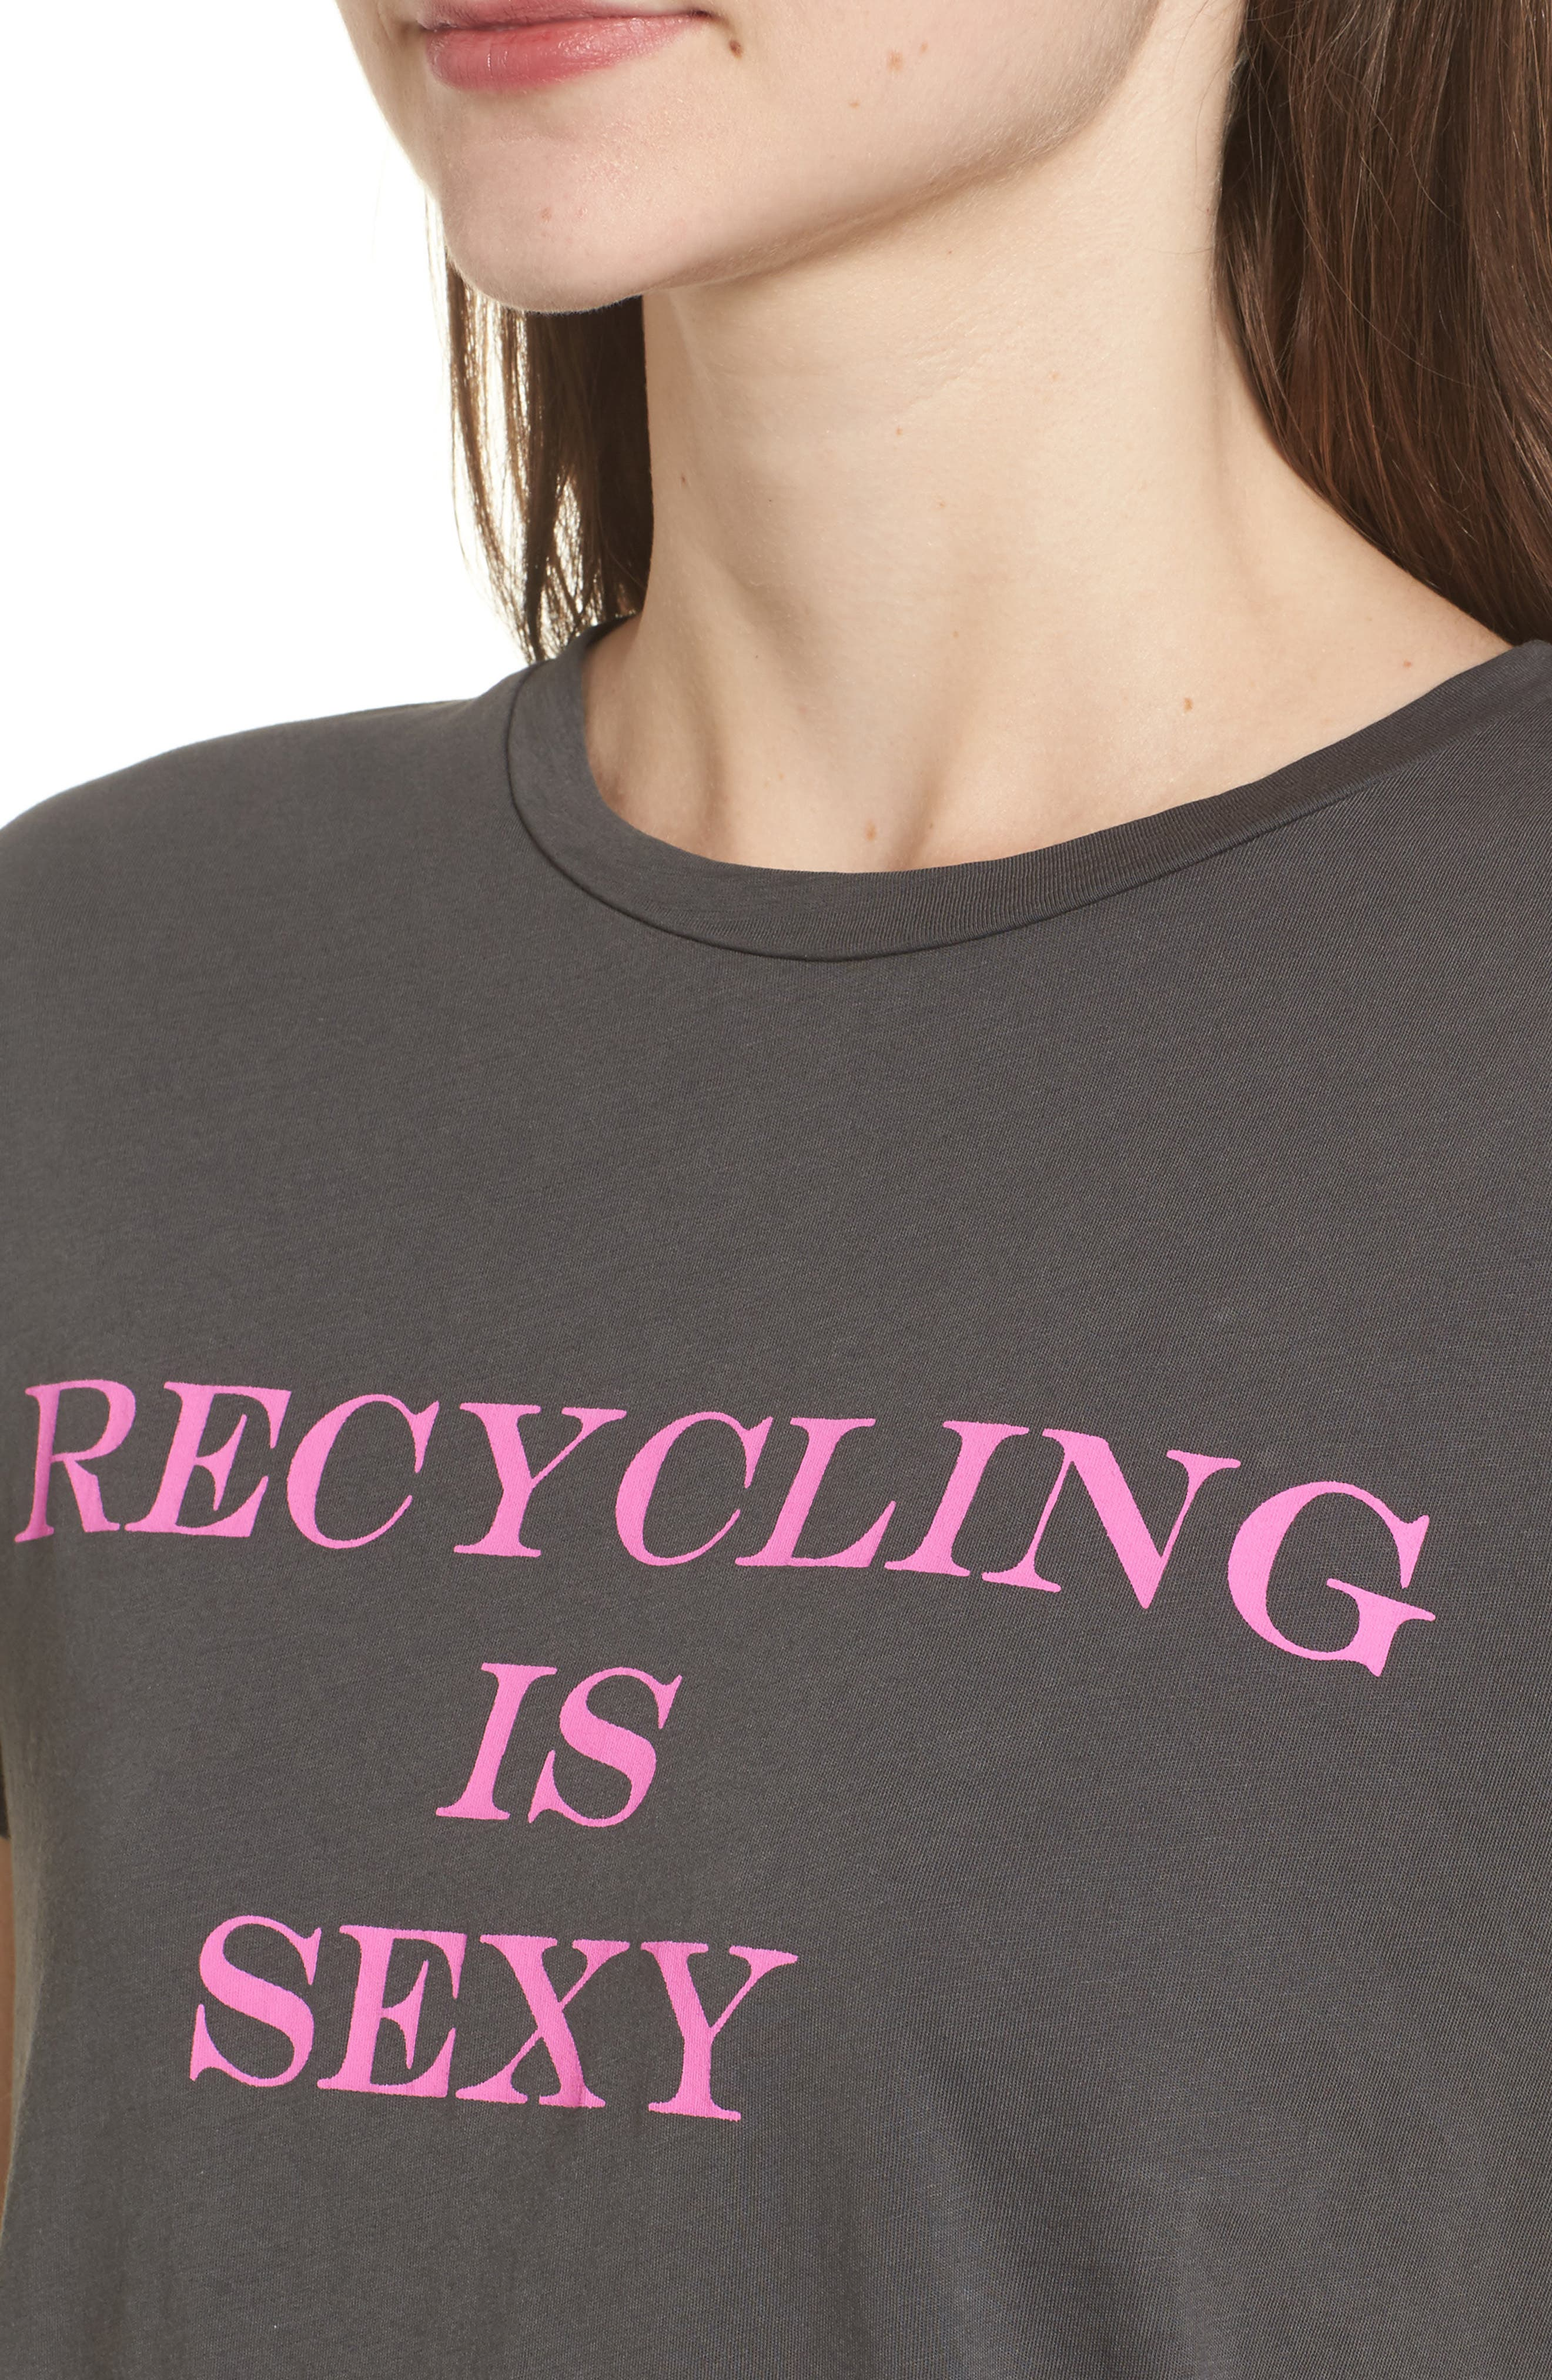 Recycling is Sexy Tee,                             Alternate thumbnail 4, color,                             004